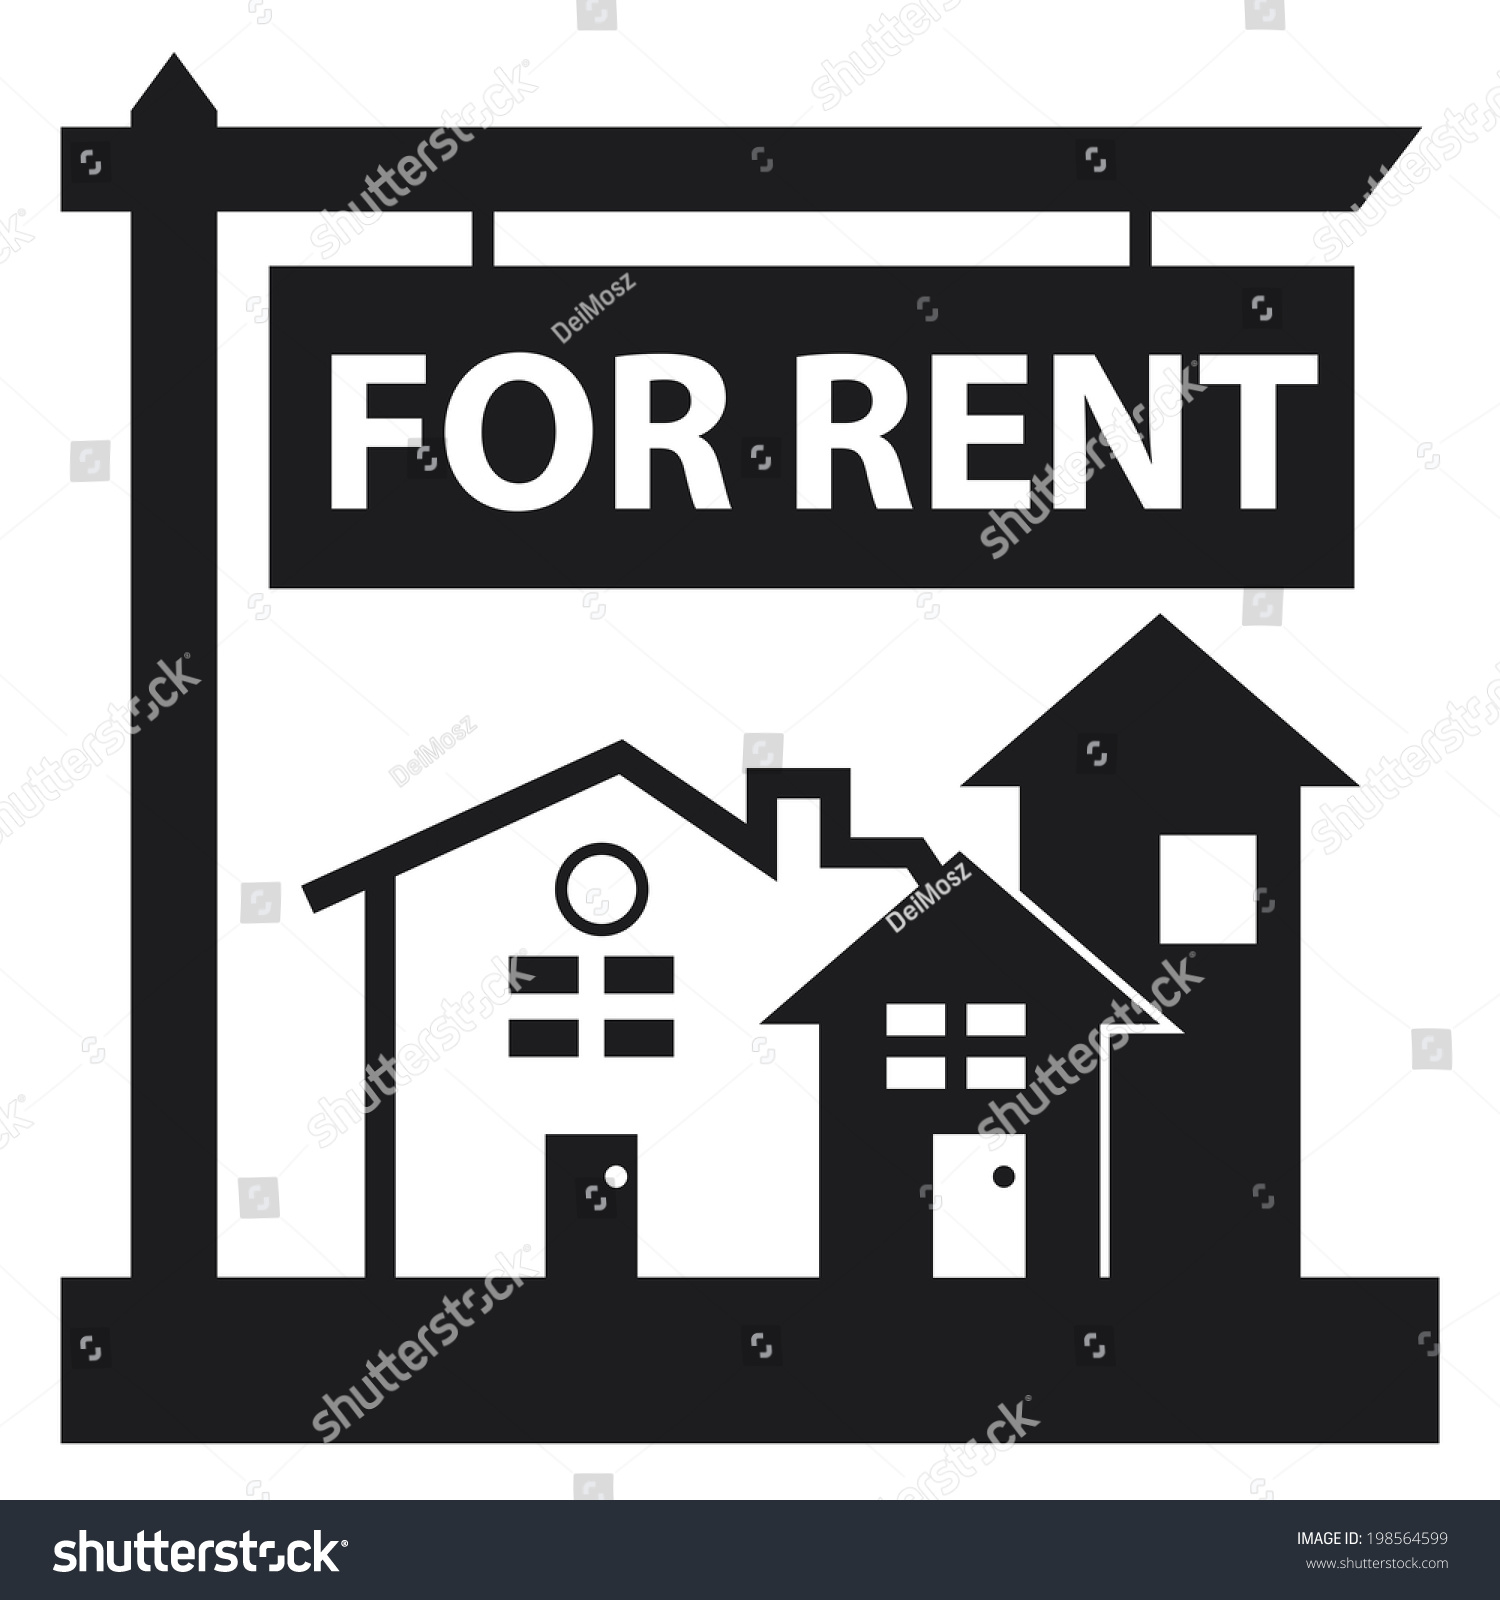 Apartment For Rent Sign: Black Home Apartment Building Condominium Real Stock